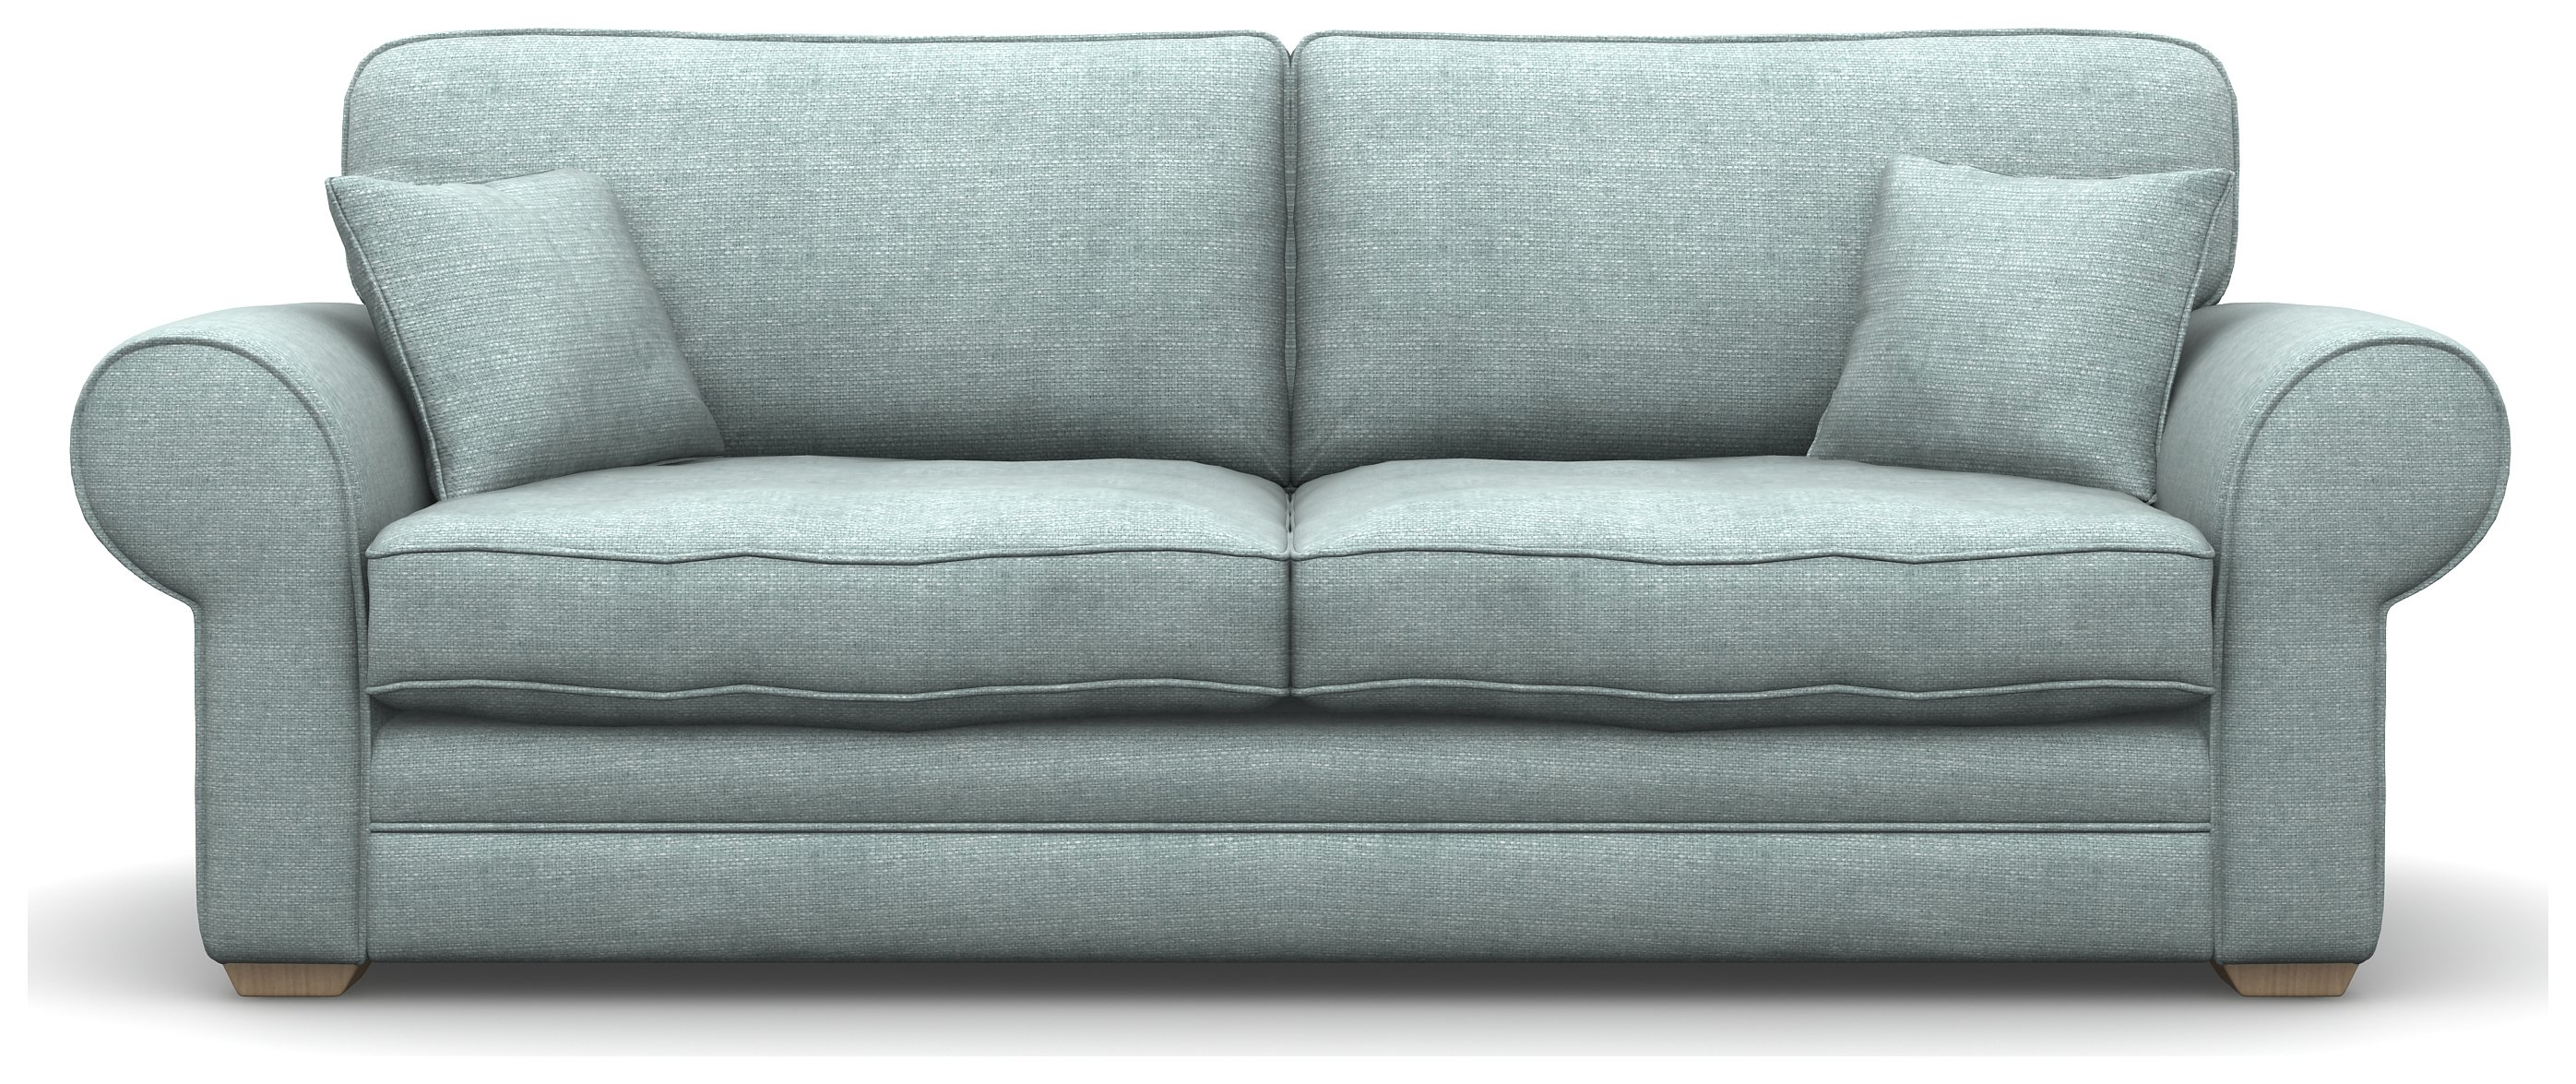 Heart of House Chedworth 4 Seater Fabric Sofa - Duck Egg